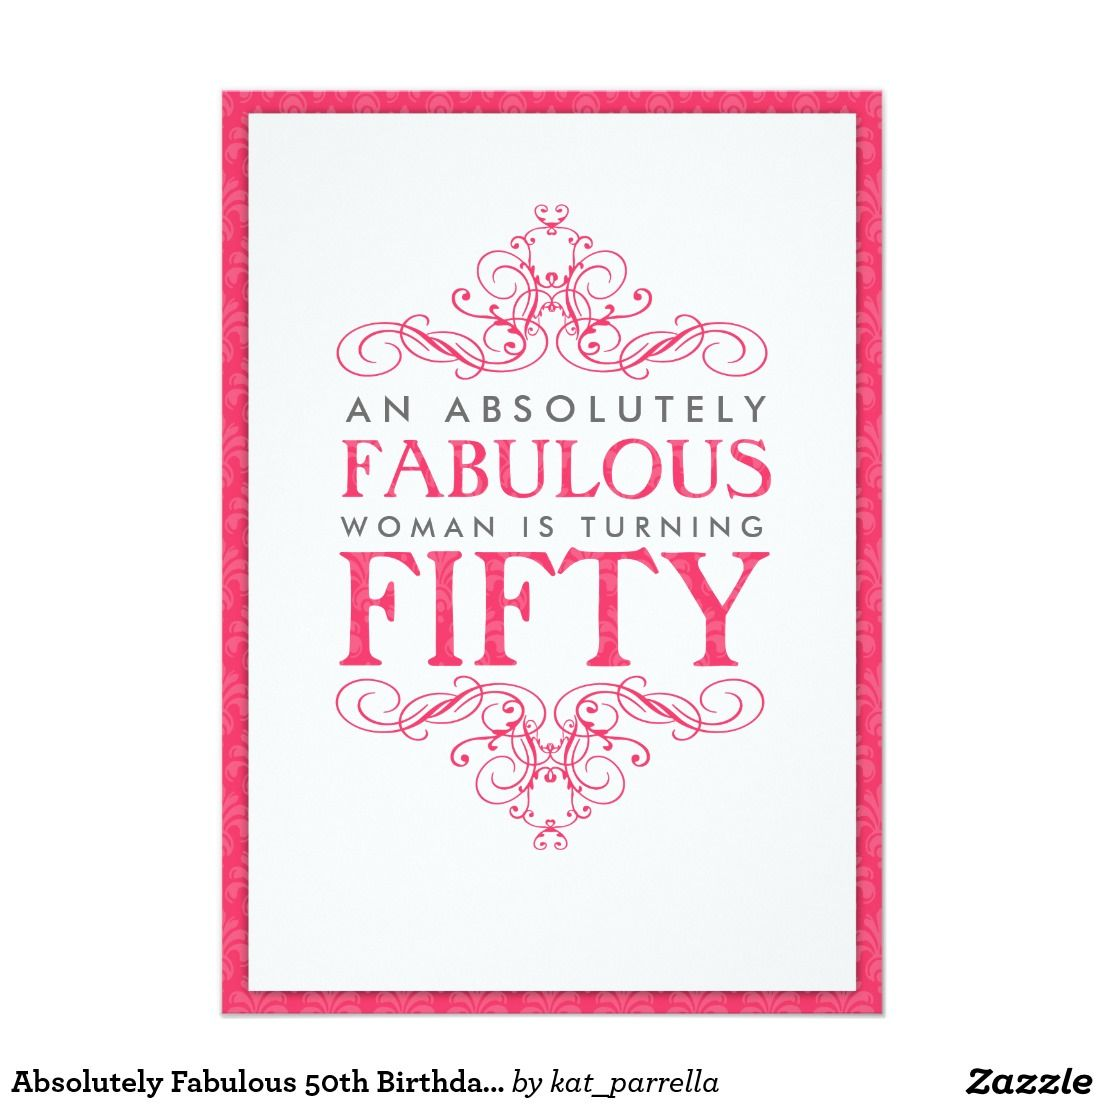 Absolutely Fabulous 50th Birthday Party Invitation | 50th birthday ...